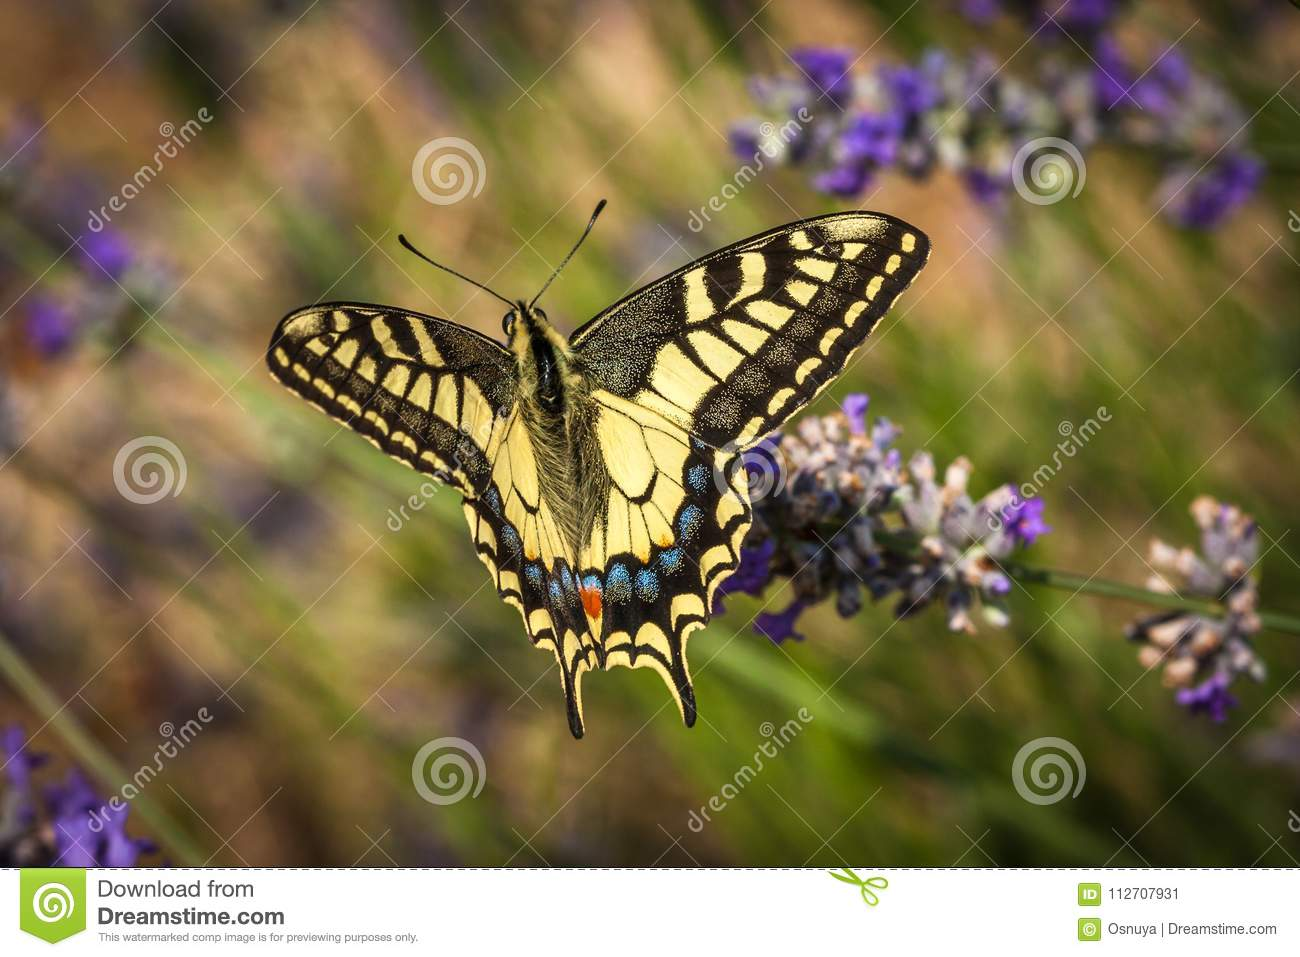 Old World swallowtail butterfly sitting on a lavender flower